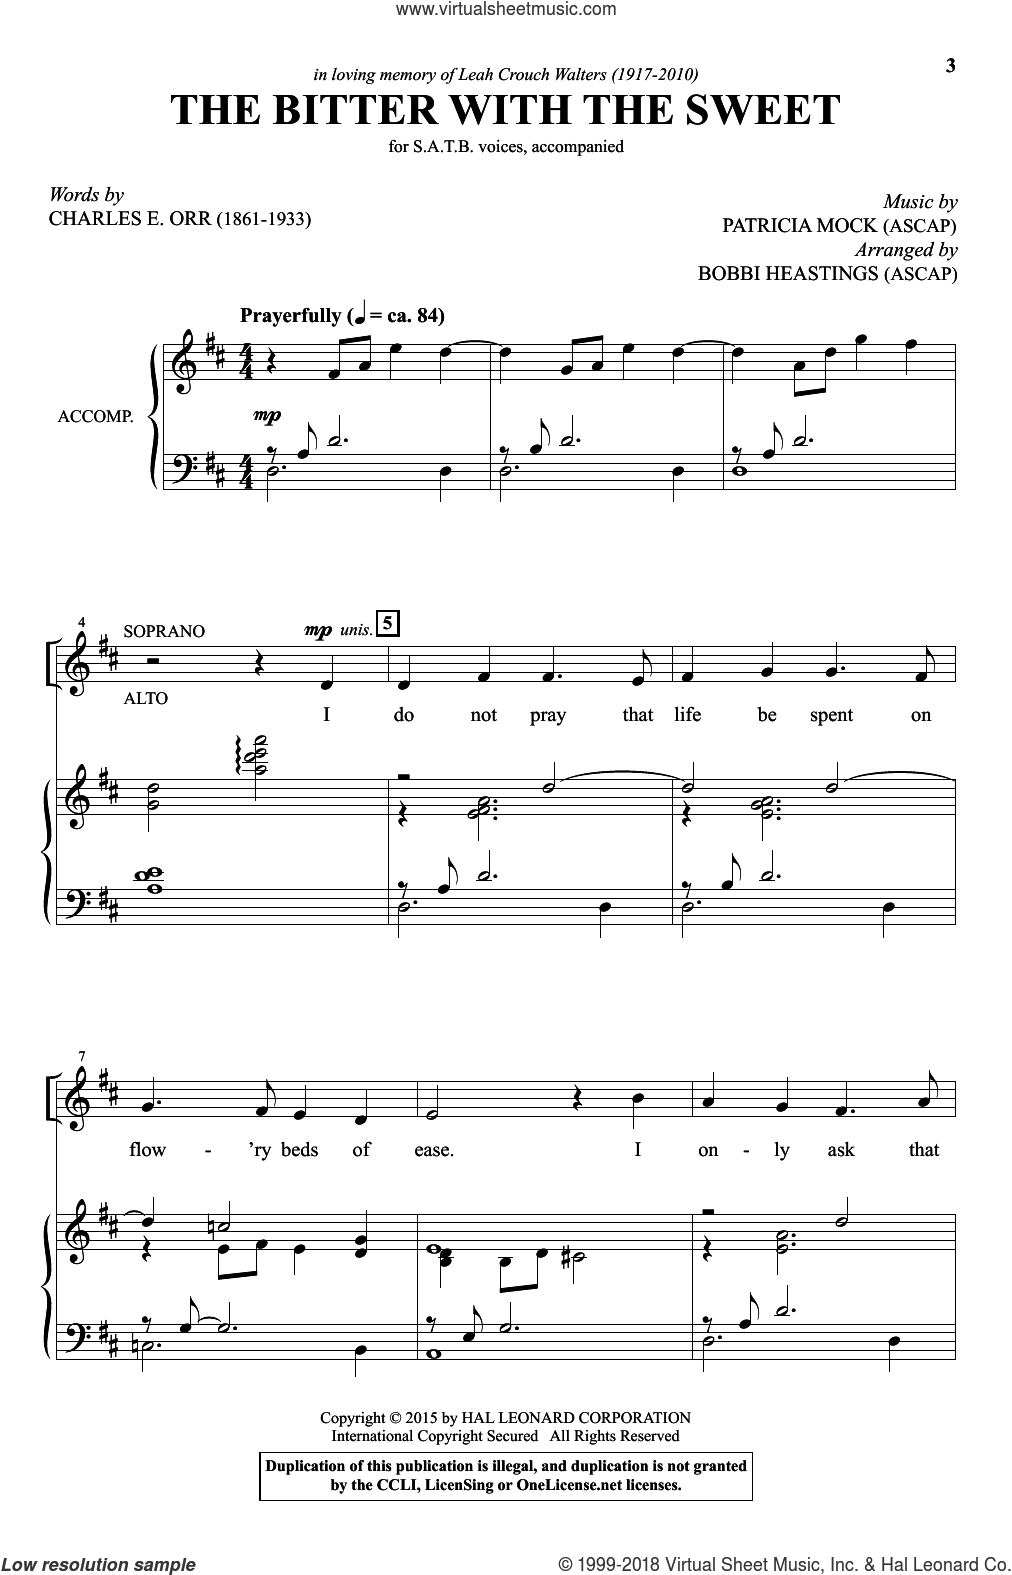 The Bitter With The Sweet sheet music for choir (SATB: soprano, alto, tenor, bass) by Patricia Mock, Bobbi Heastings, Charles Orr and Charles E. Orr, intermediate skill level